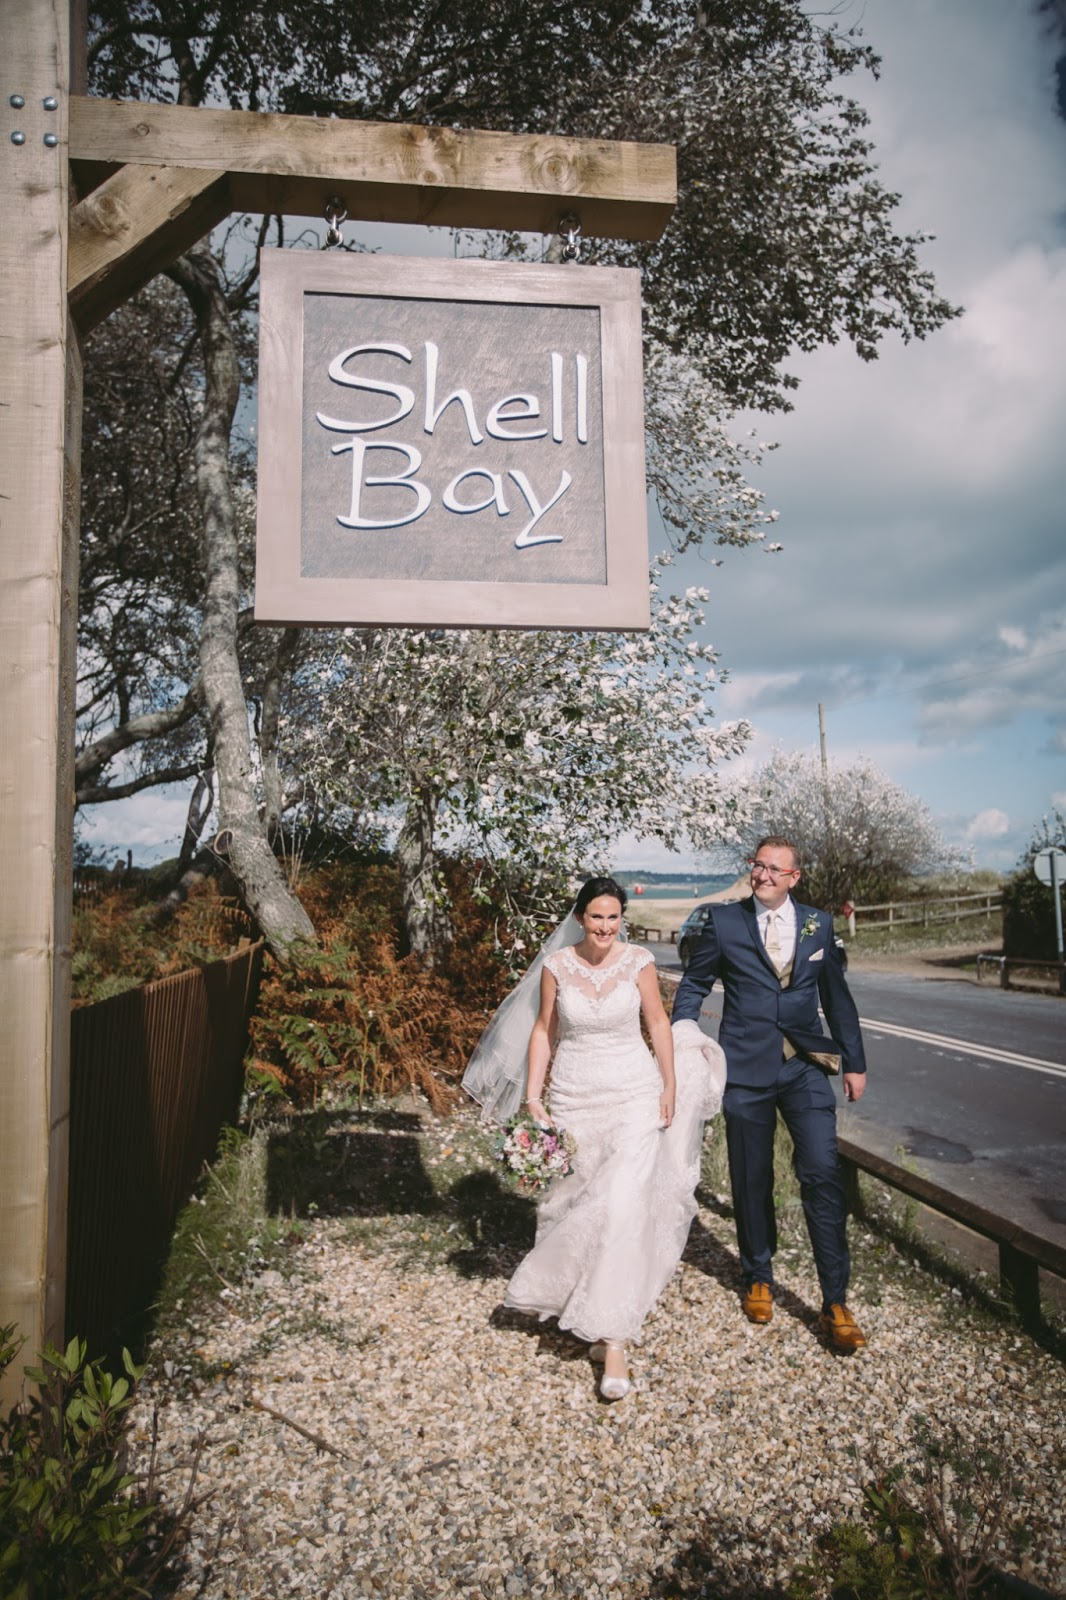 Shell Bay Seafood Restaurant Wedding